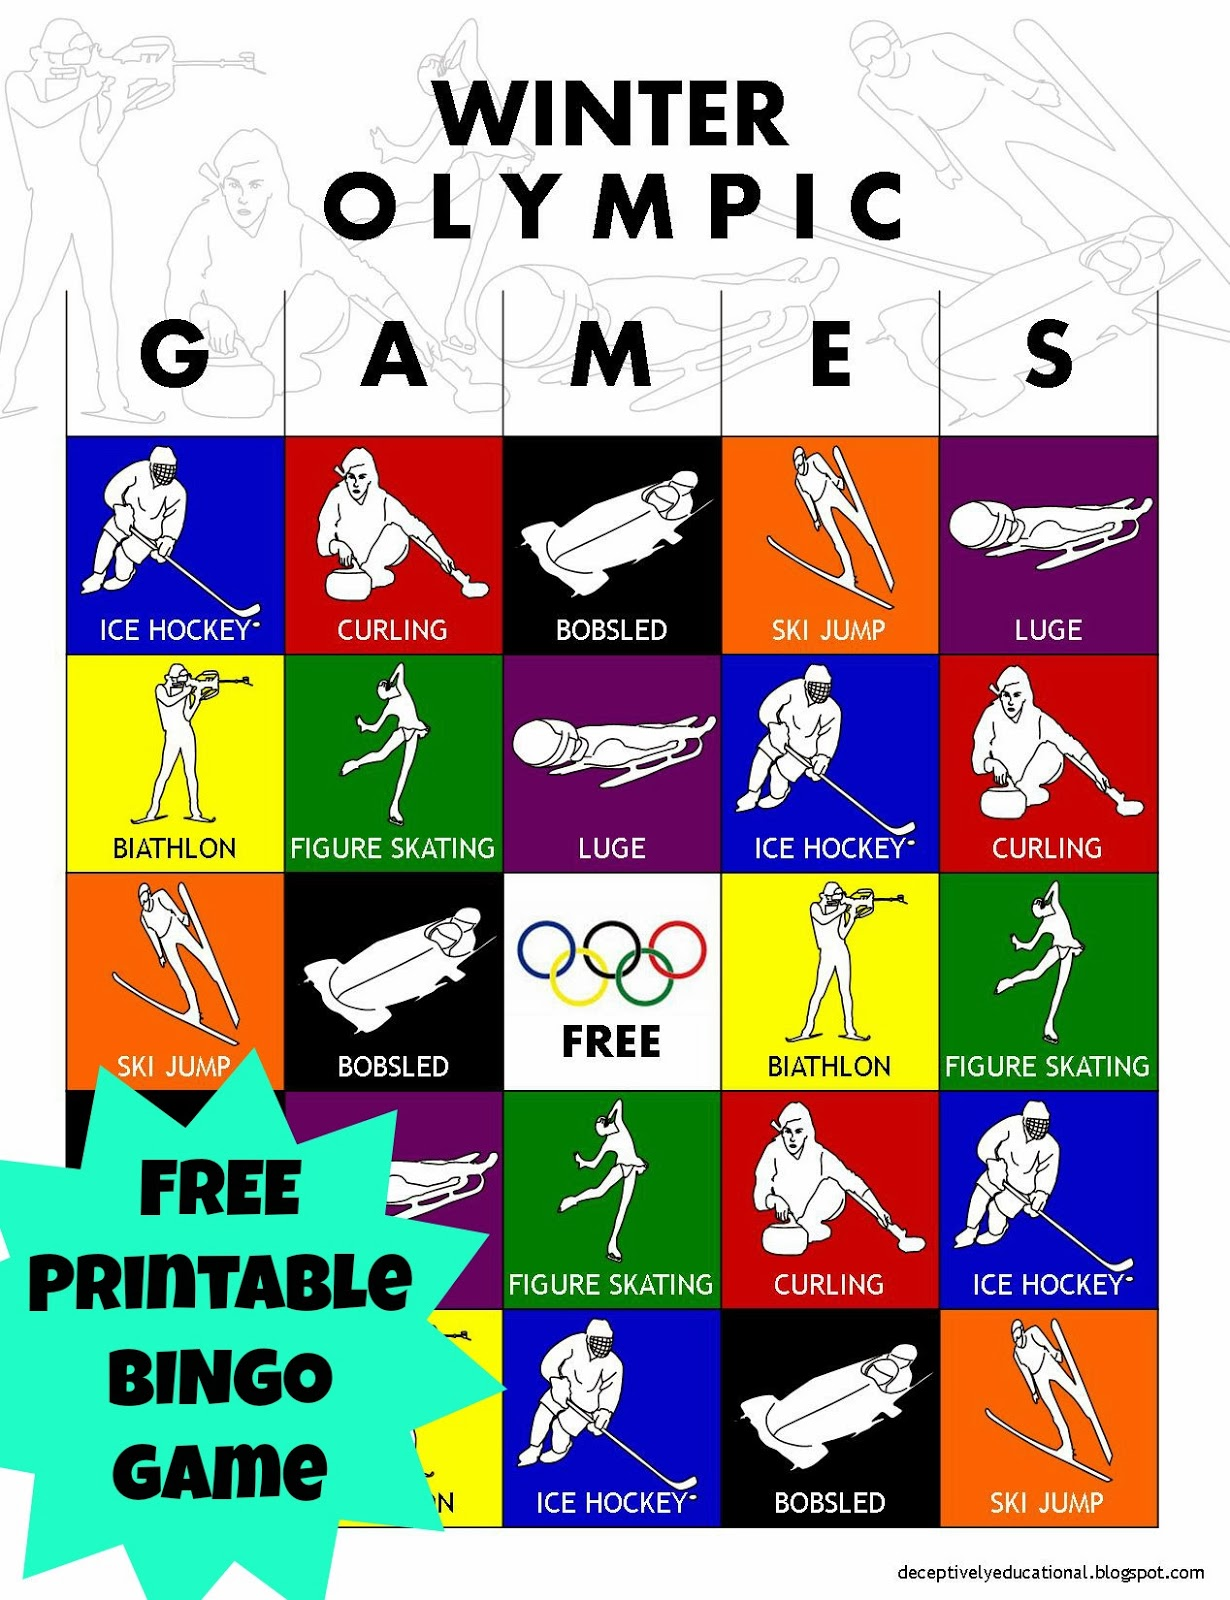 Relentlessly Fun Deceptively Educational Olympic Winter Games Bingo